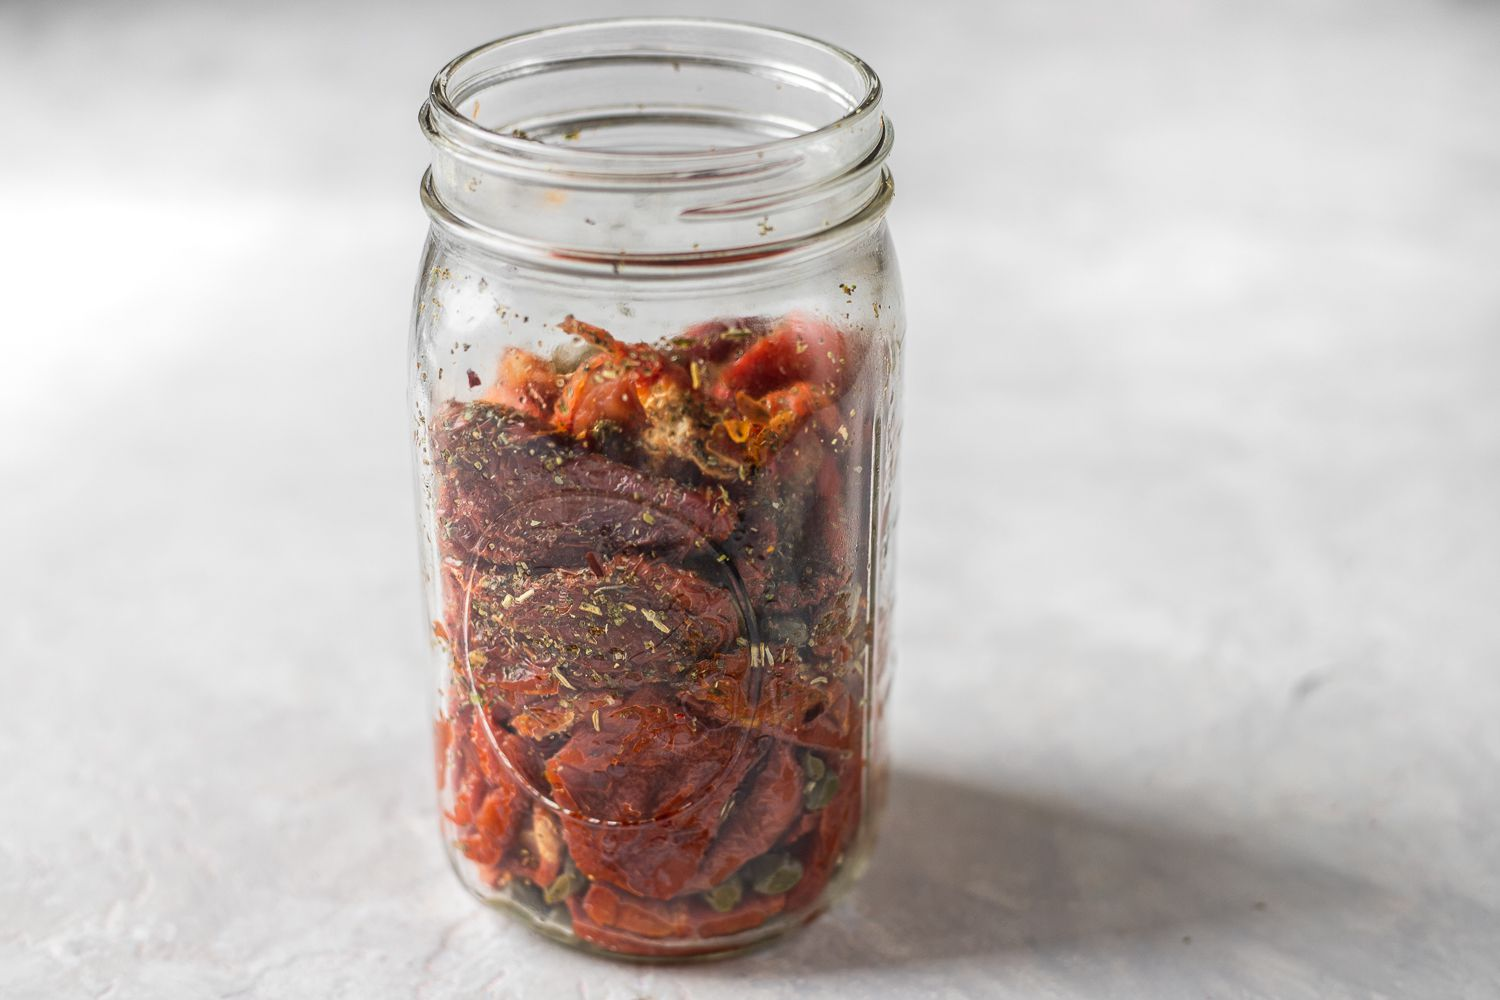 Transfer the tomatoes to the glass jar, make layers of tomatoes and seasonings